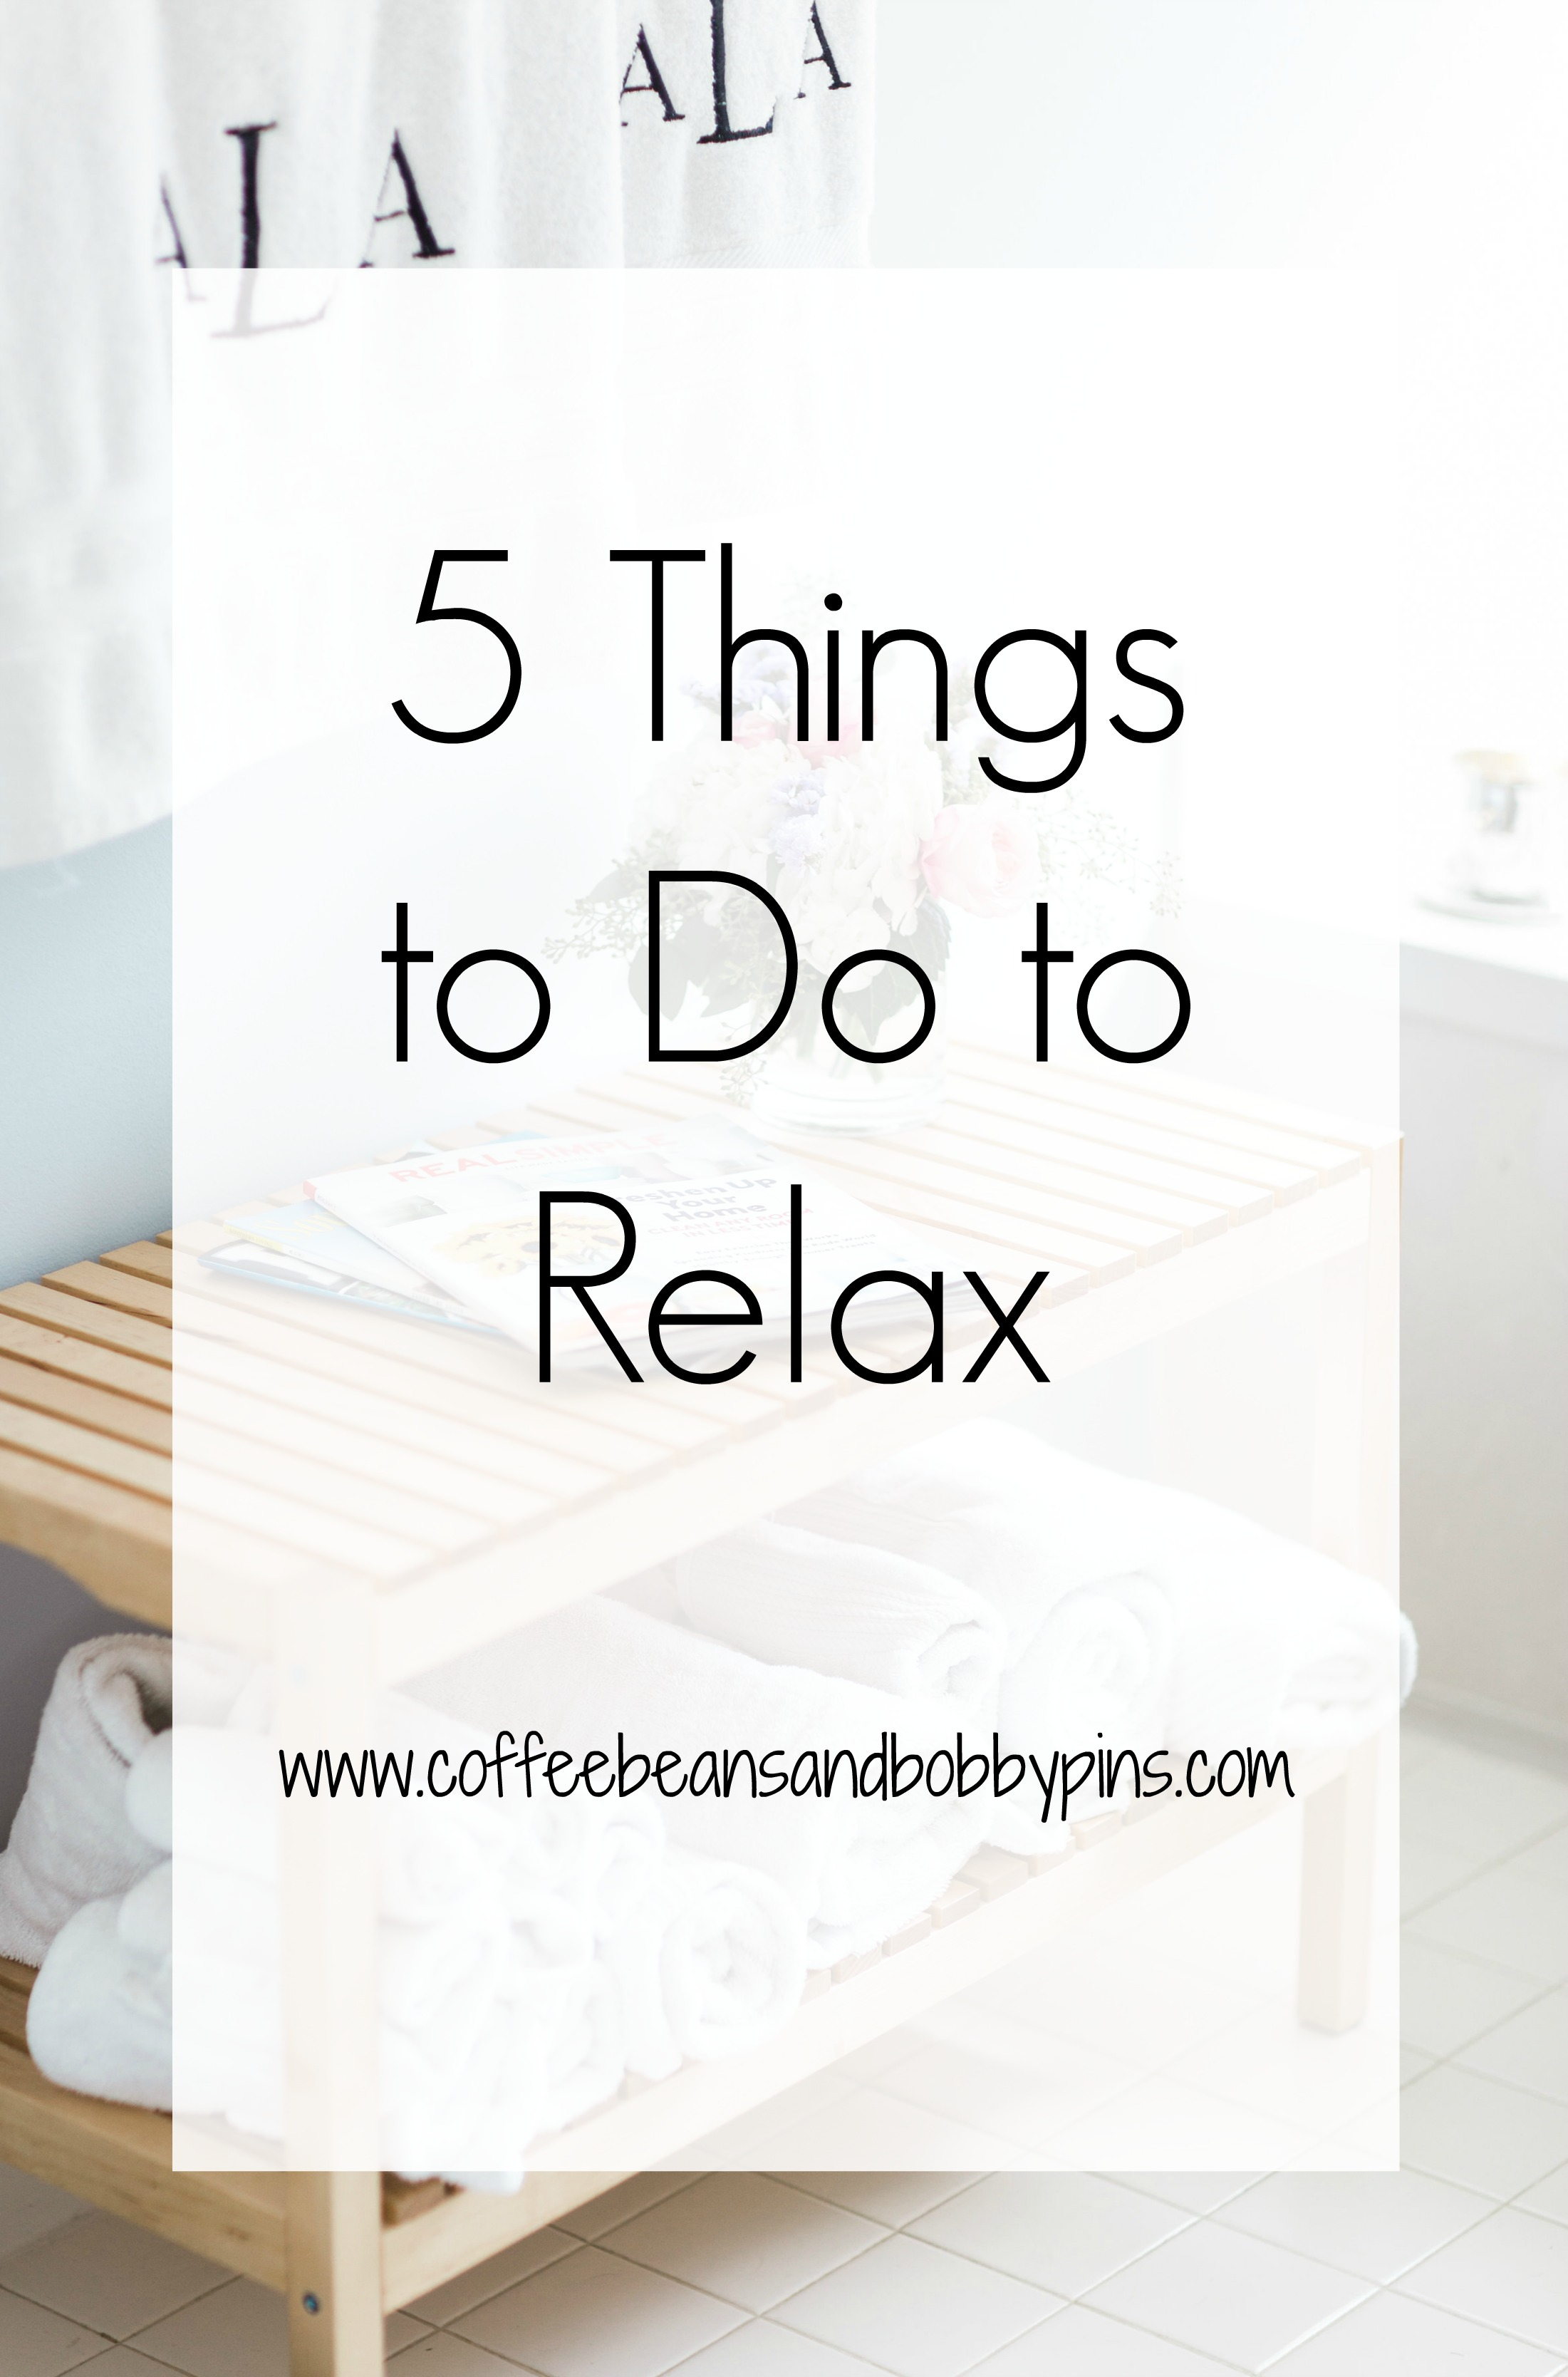 Top 5 Things to Do to Relax by NC lifestyle blogger Coffee Beans and Bobby Pins